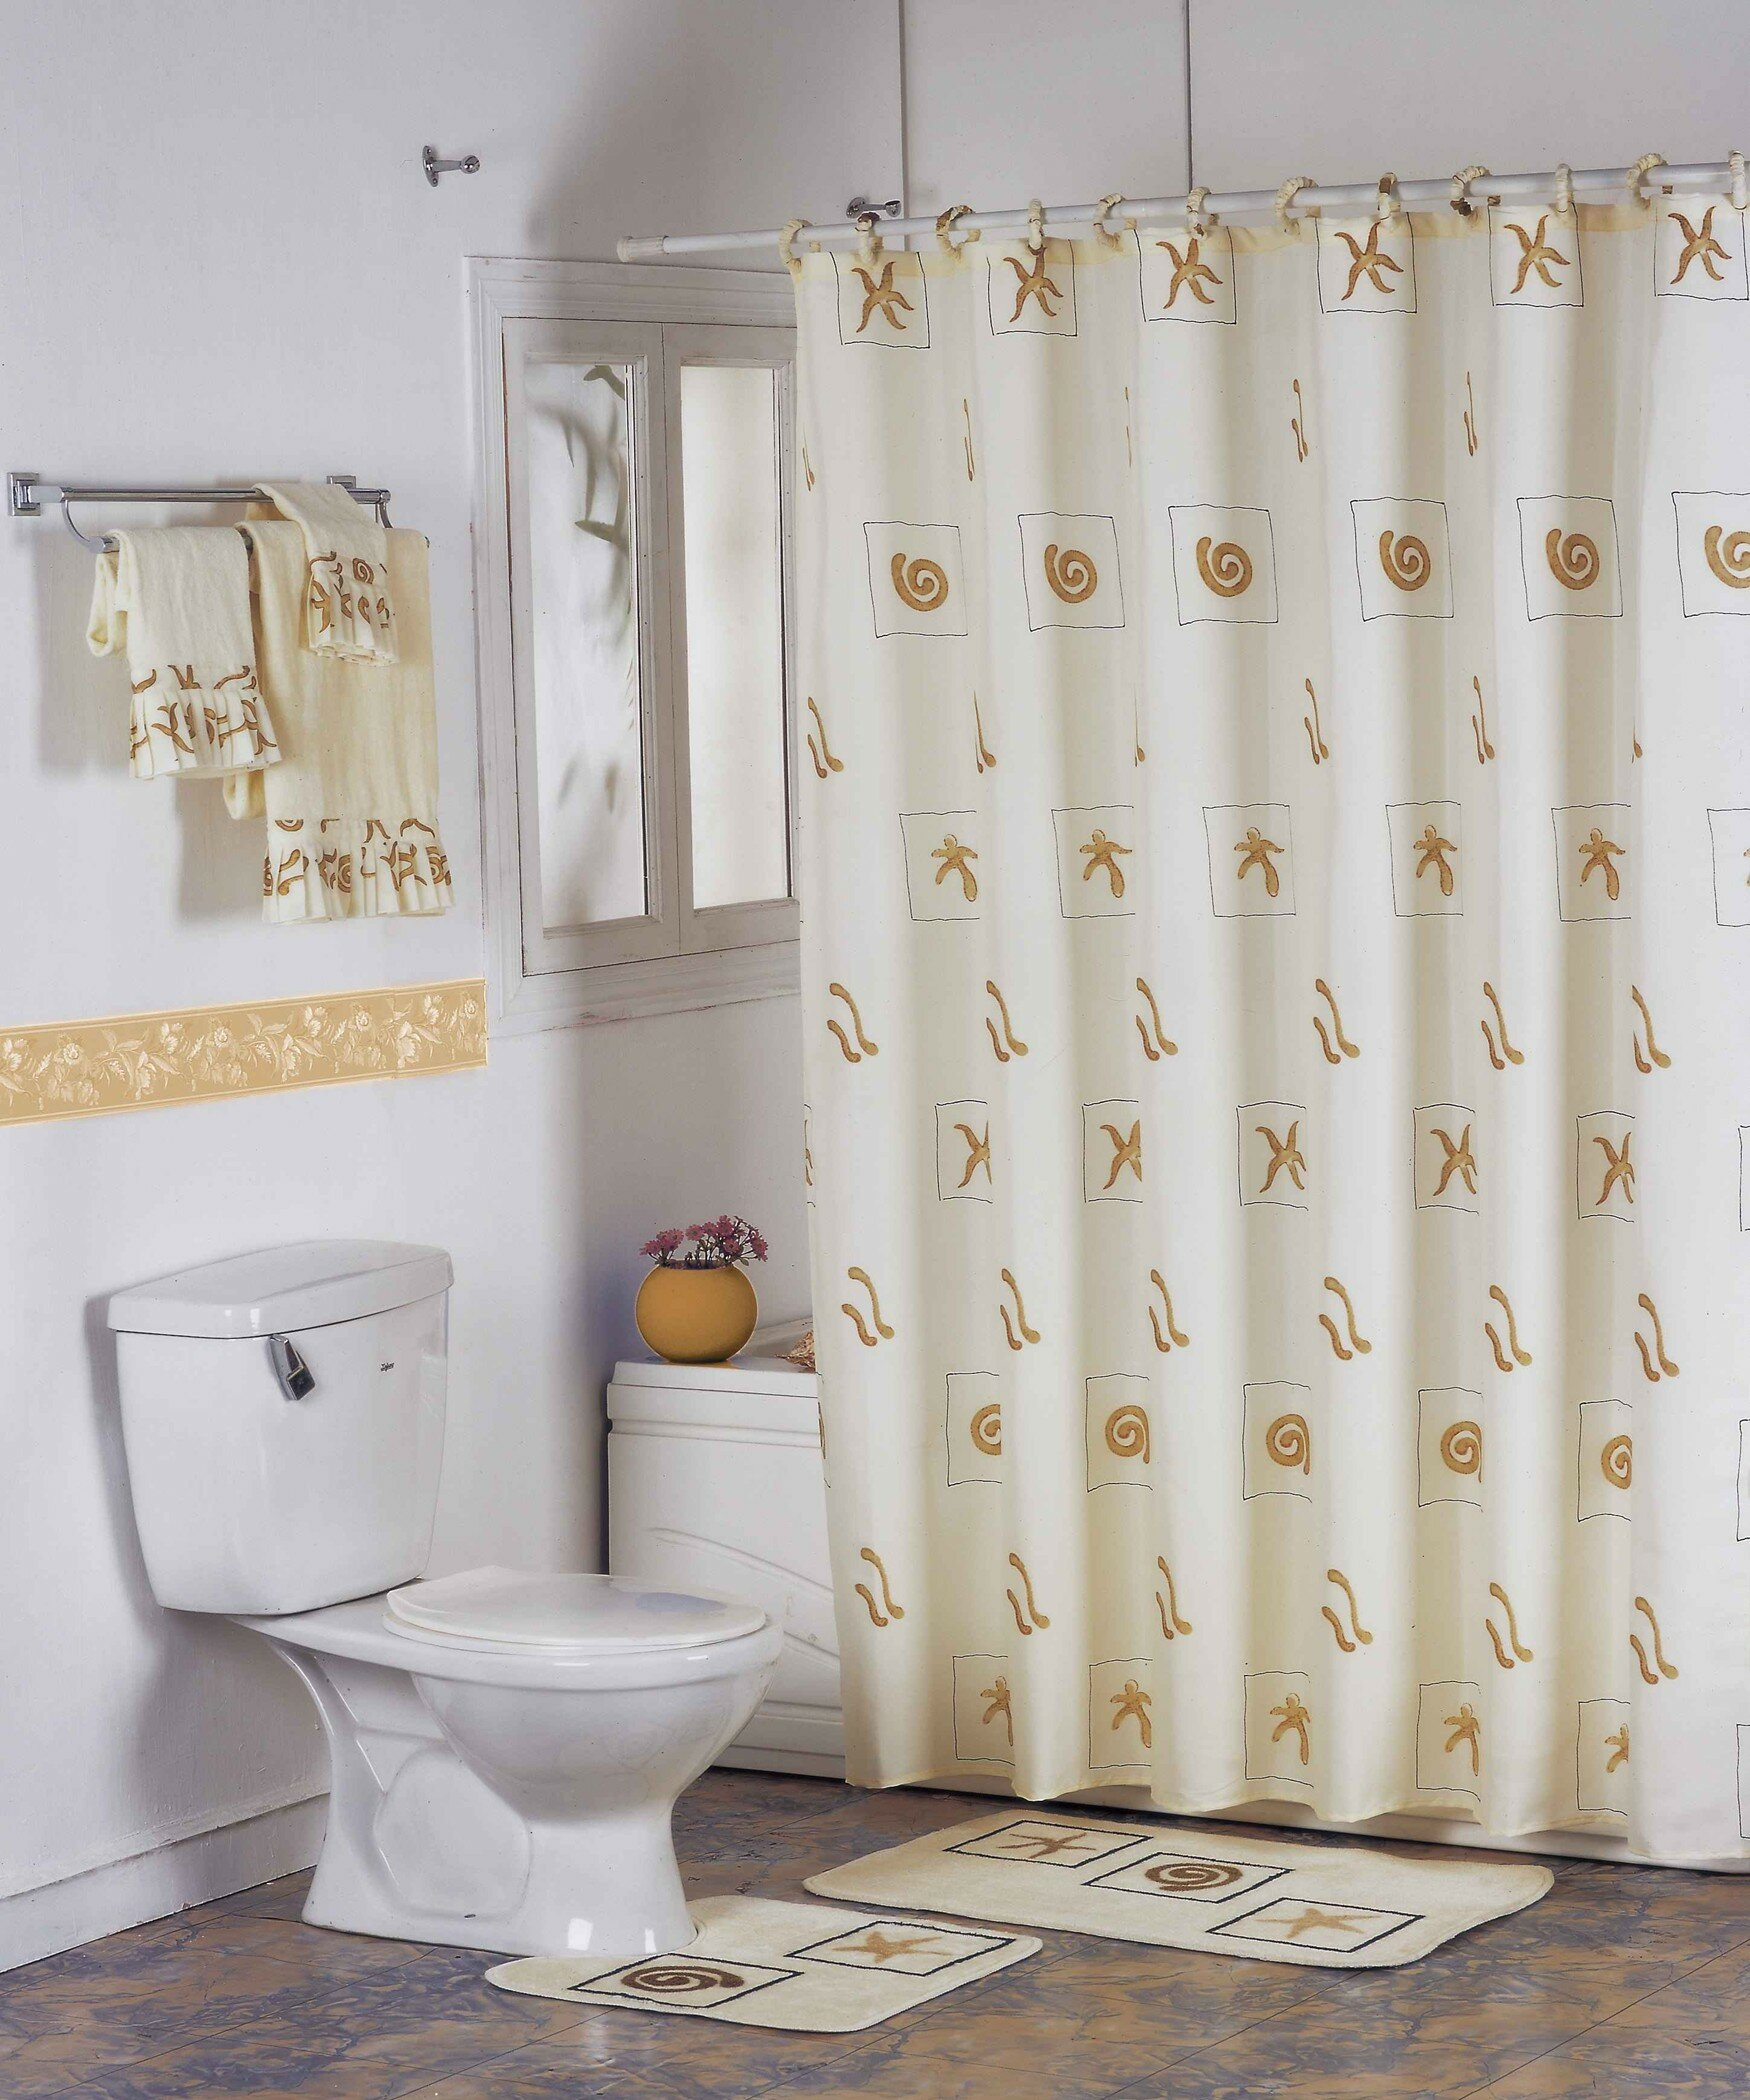 Curtain Restoration Hardware Shower Curtain Teenage Bathroom - Shower curtains for bathroom